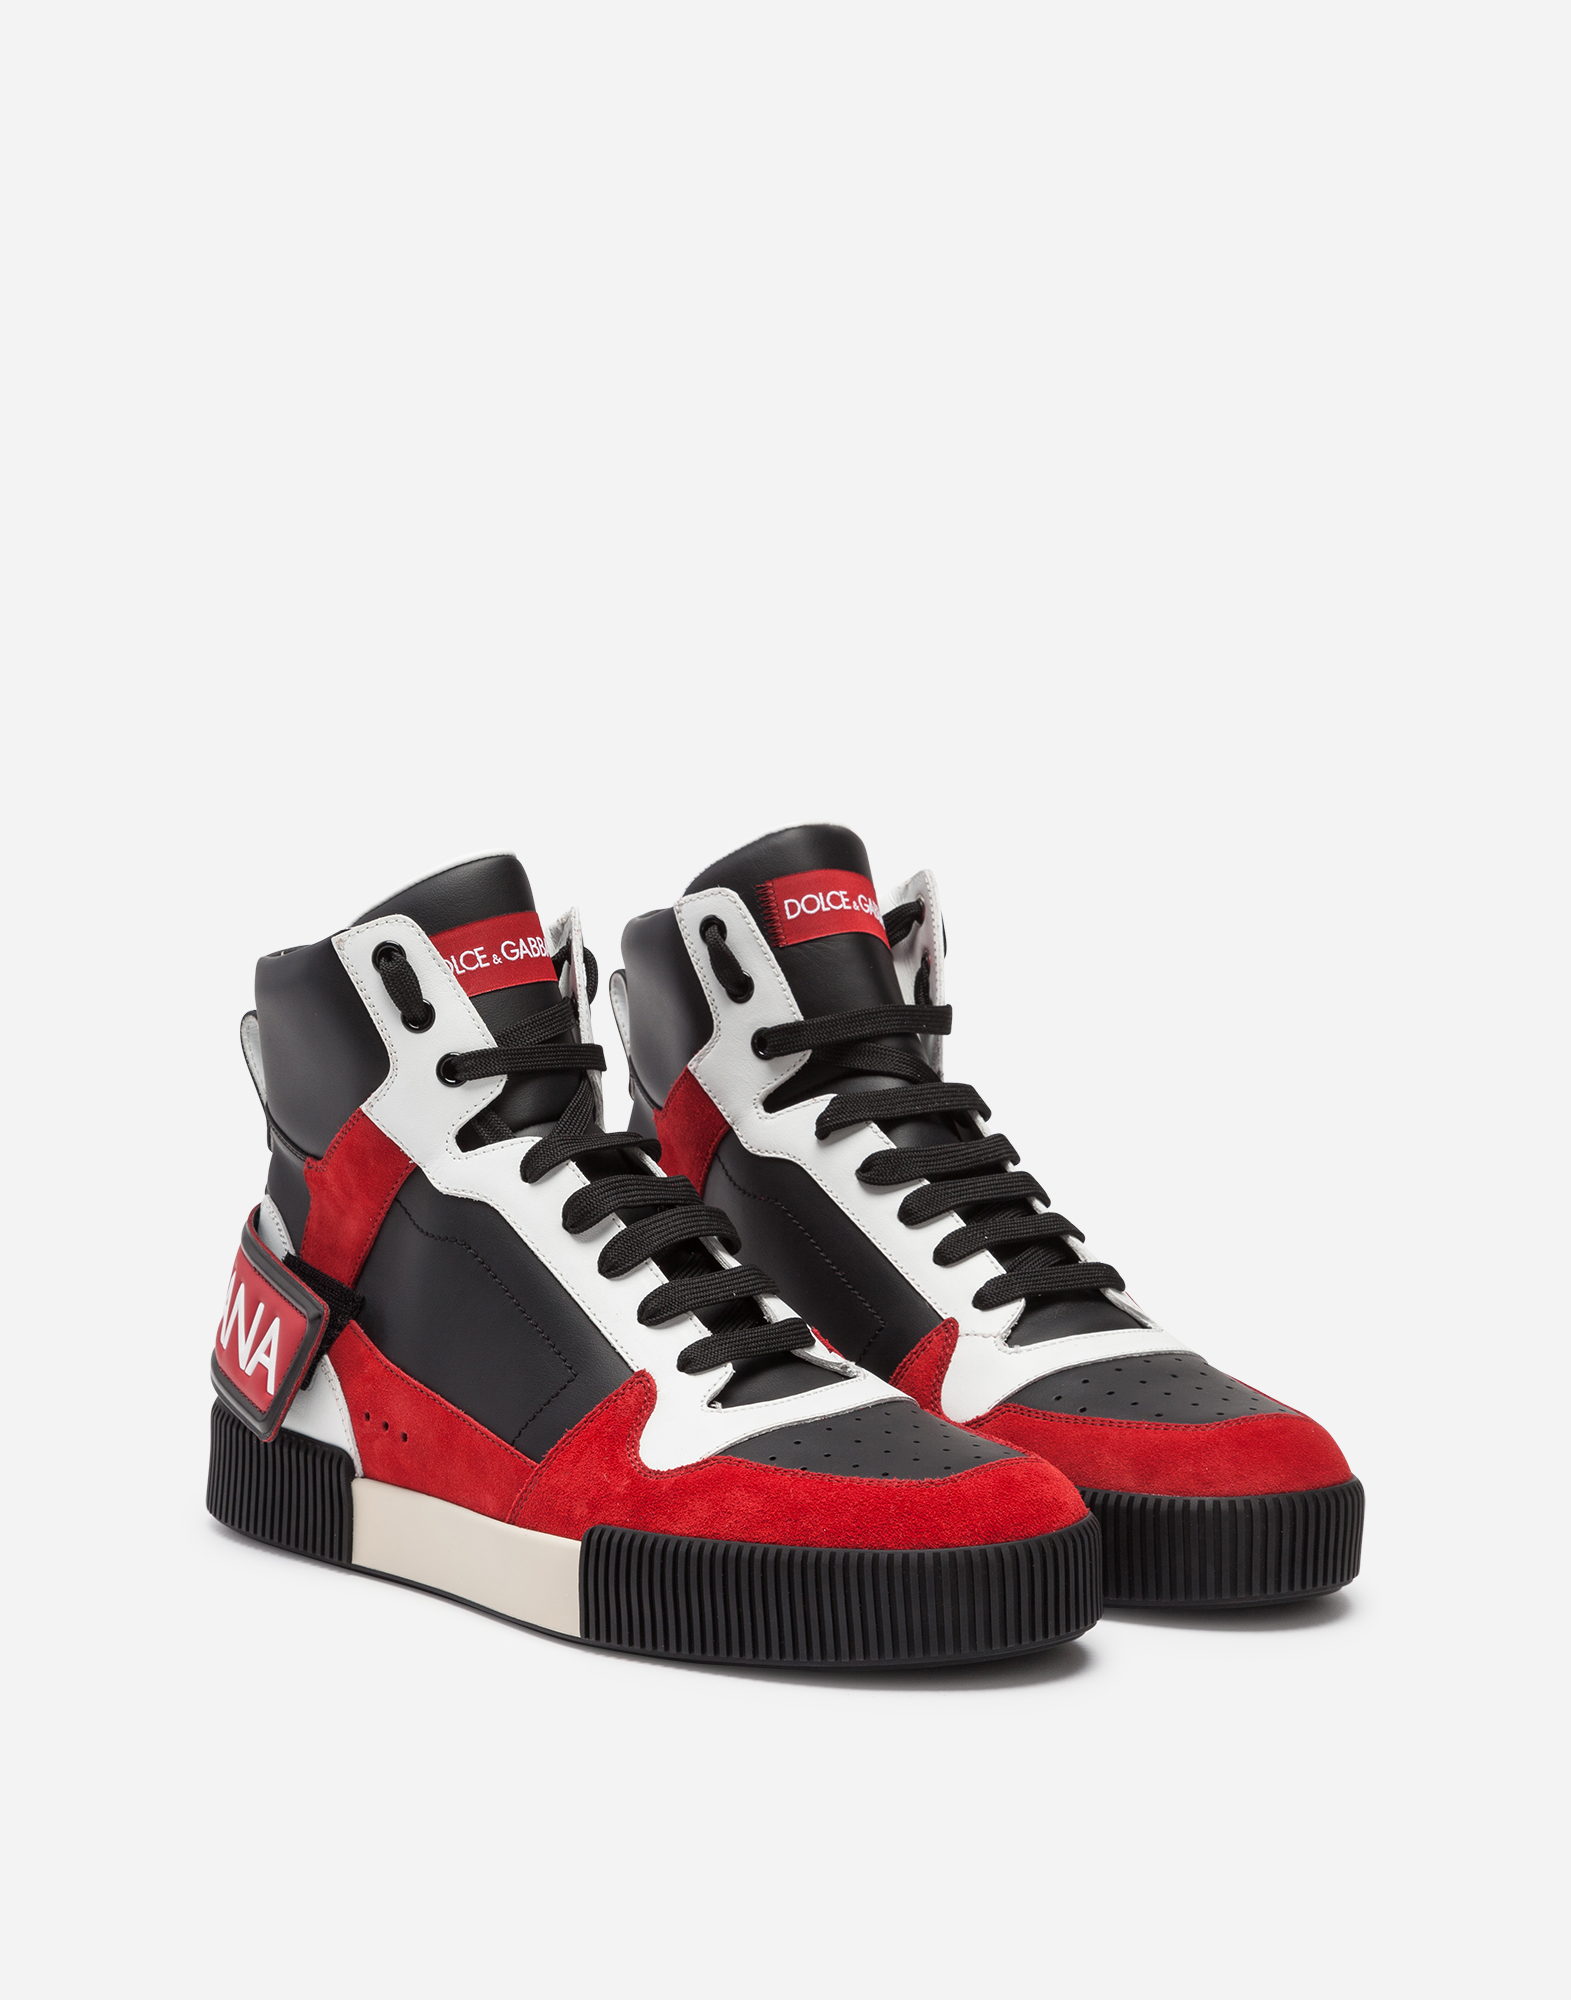 Dolce & Gabbana HIGH TOP SNEAKERS IN MIXED MATERIALS